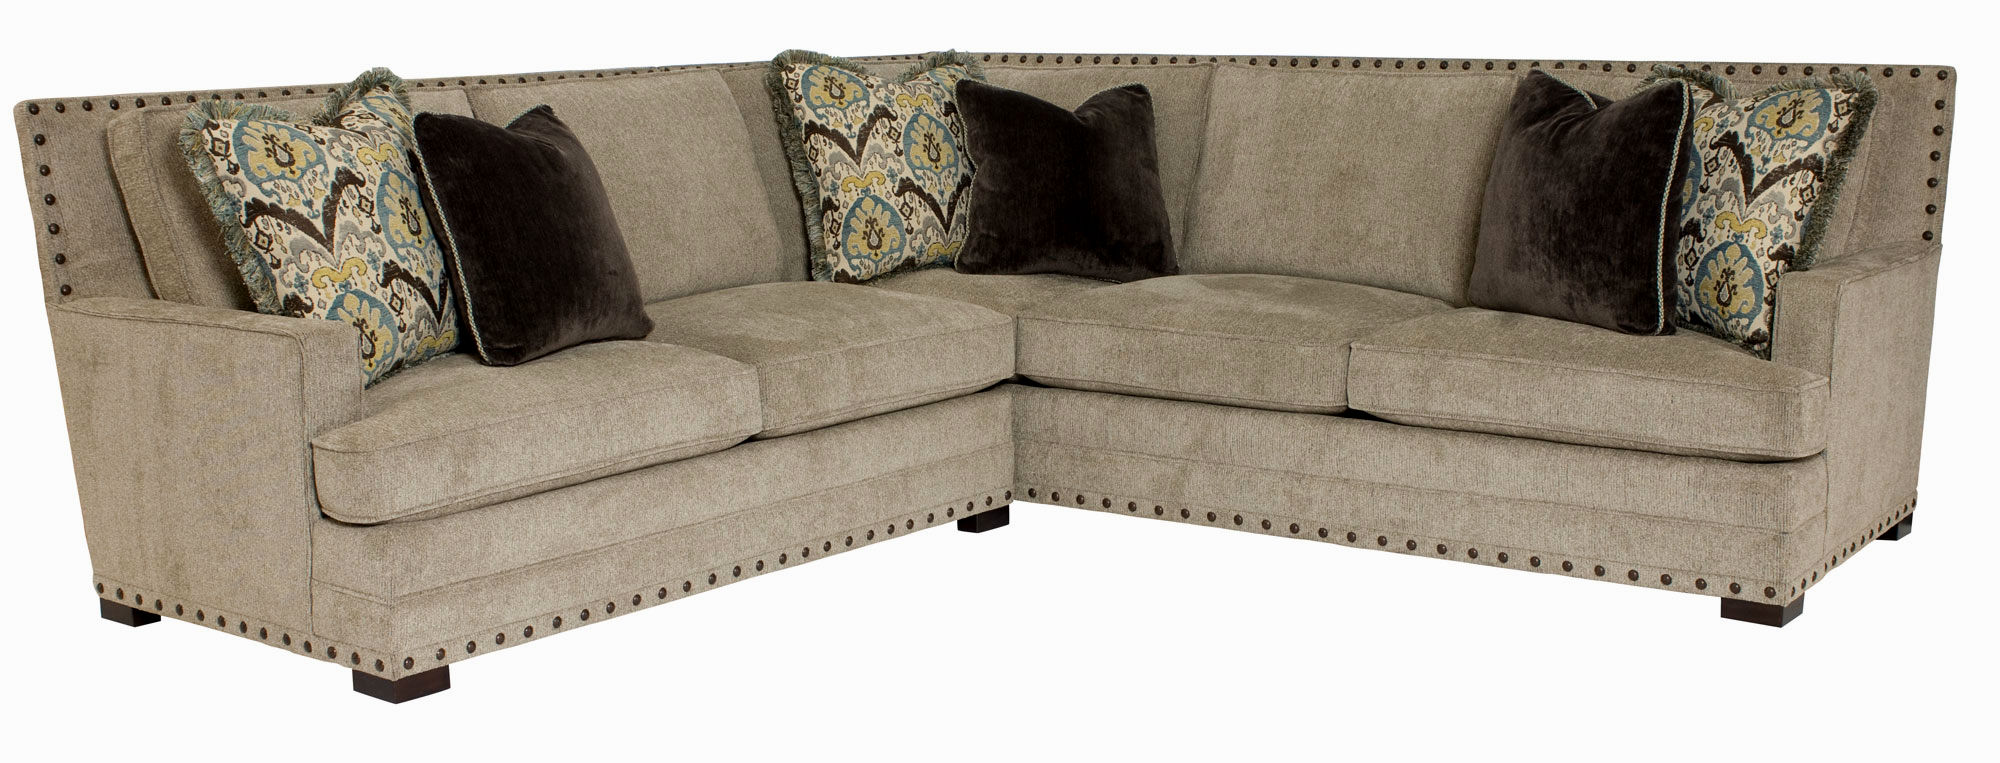 beautiful sofa and recliner photo-Best Of sofa and Recliner Photo